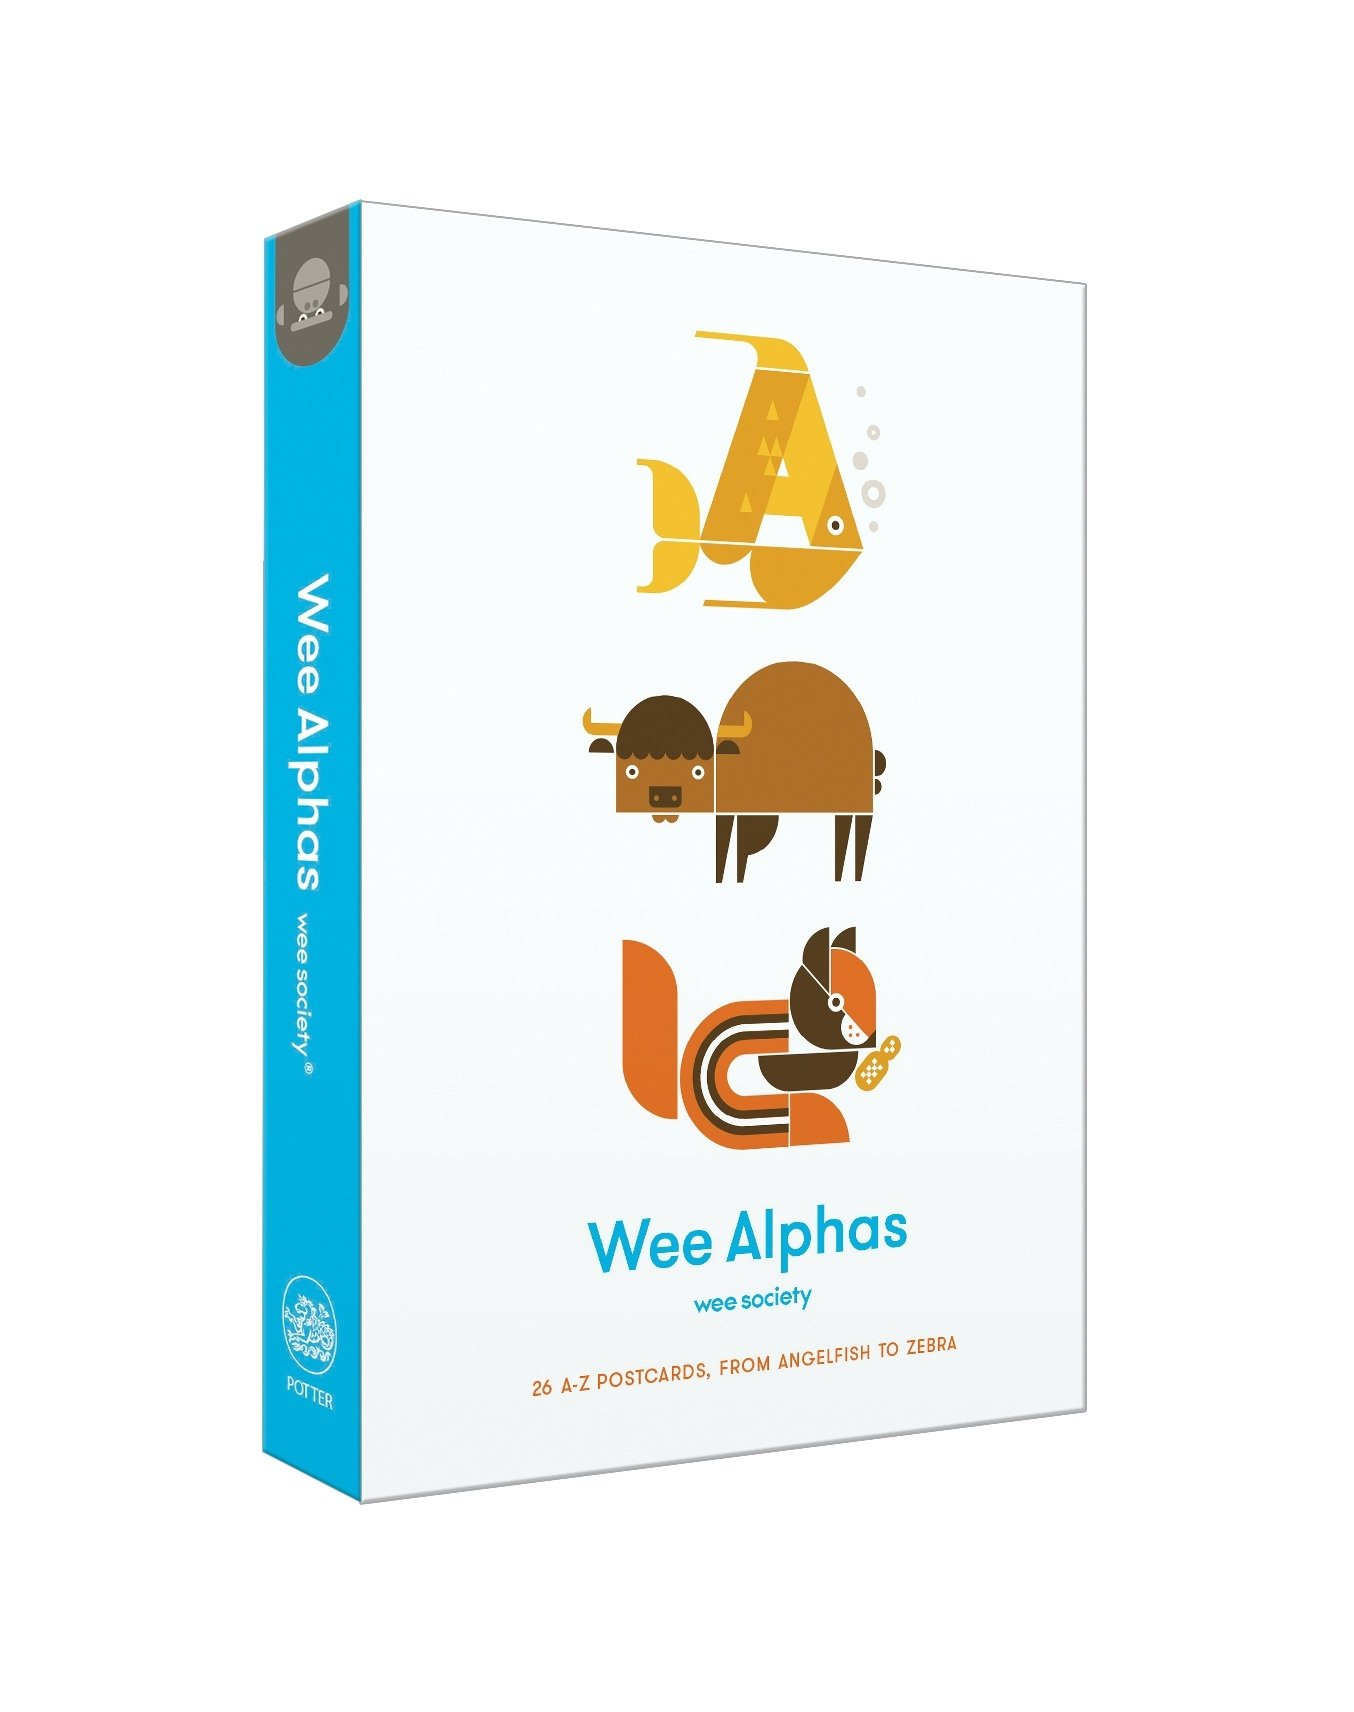 wee-alphas-26-a-to-z-postcards-from-angelfish-to-zebra